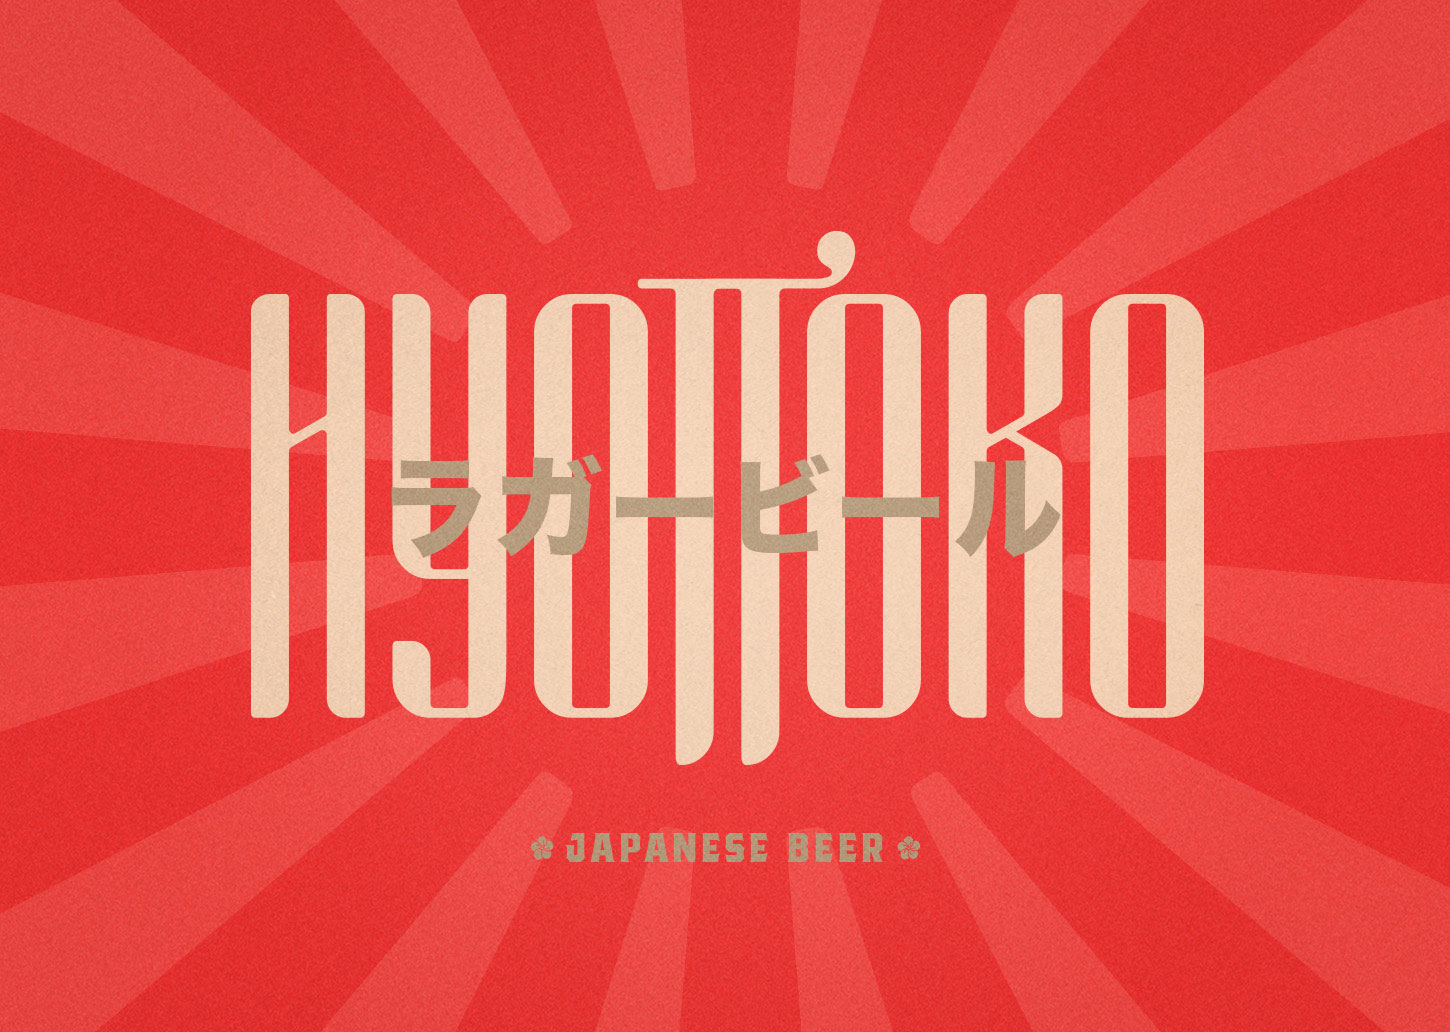 Hyottoko Japanese Lager Beer Branding and Packaging Design Concept by Emi Renzi